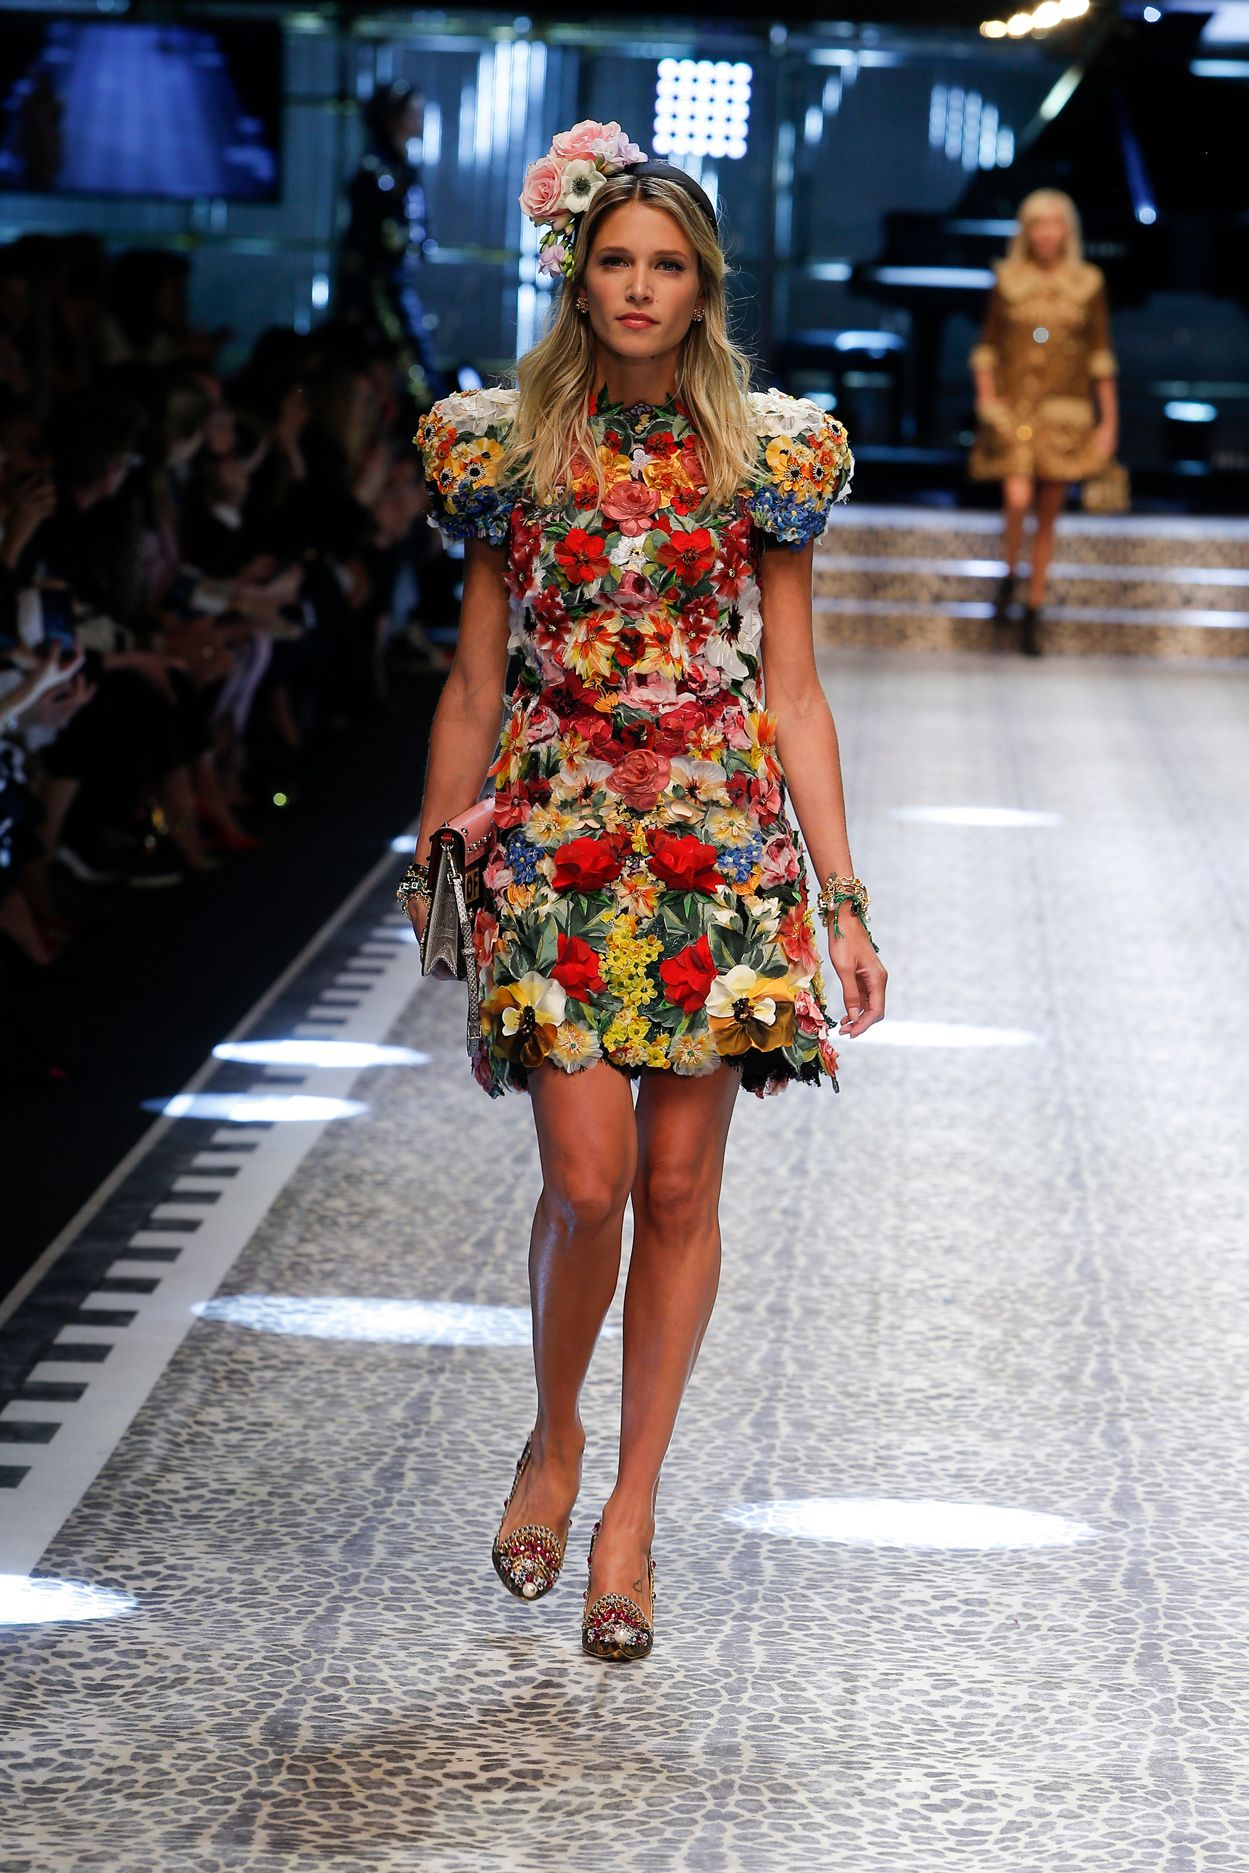 Video e foto dalla passerella del Fashion Show Dolce   Gabbana ... 8f64cdb746b